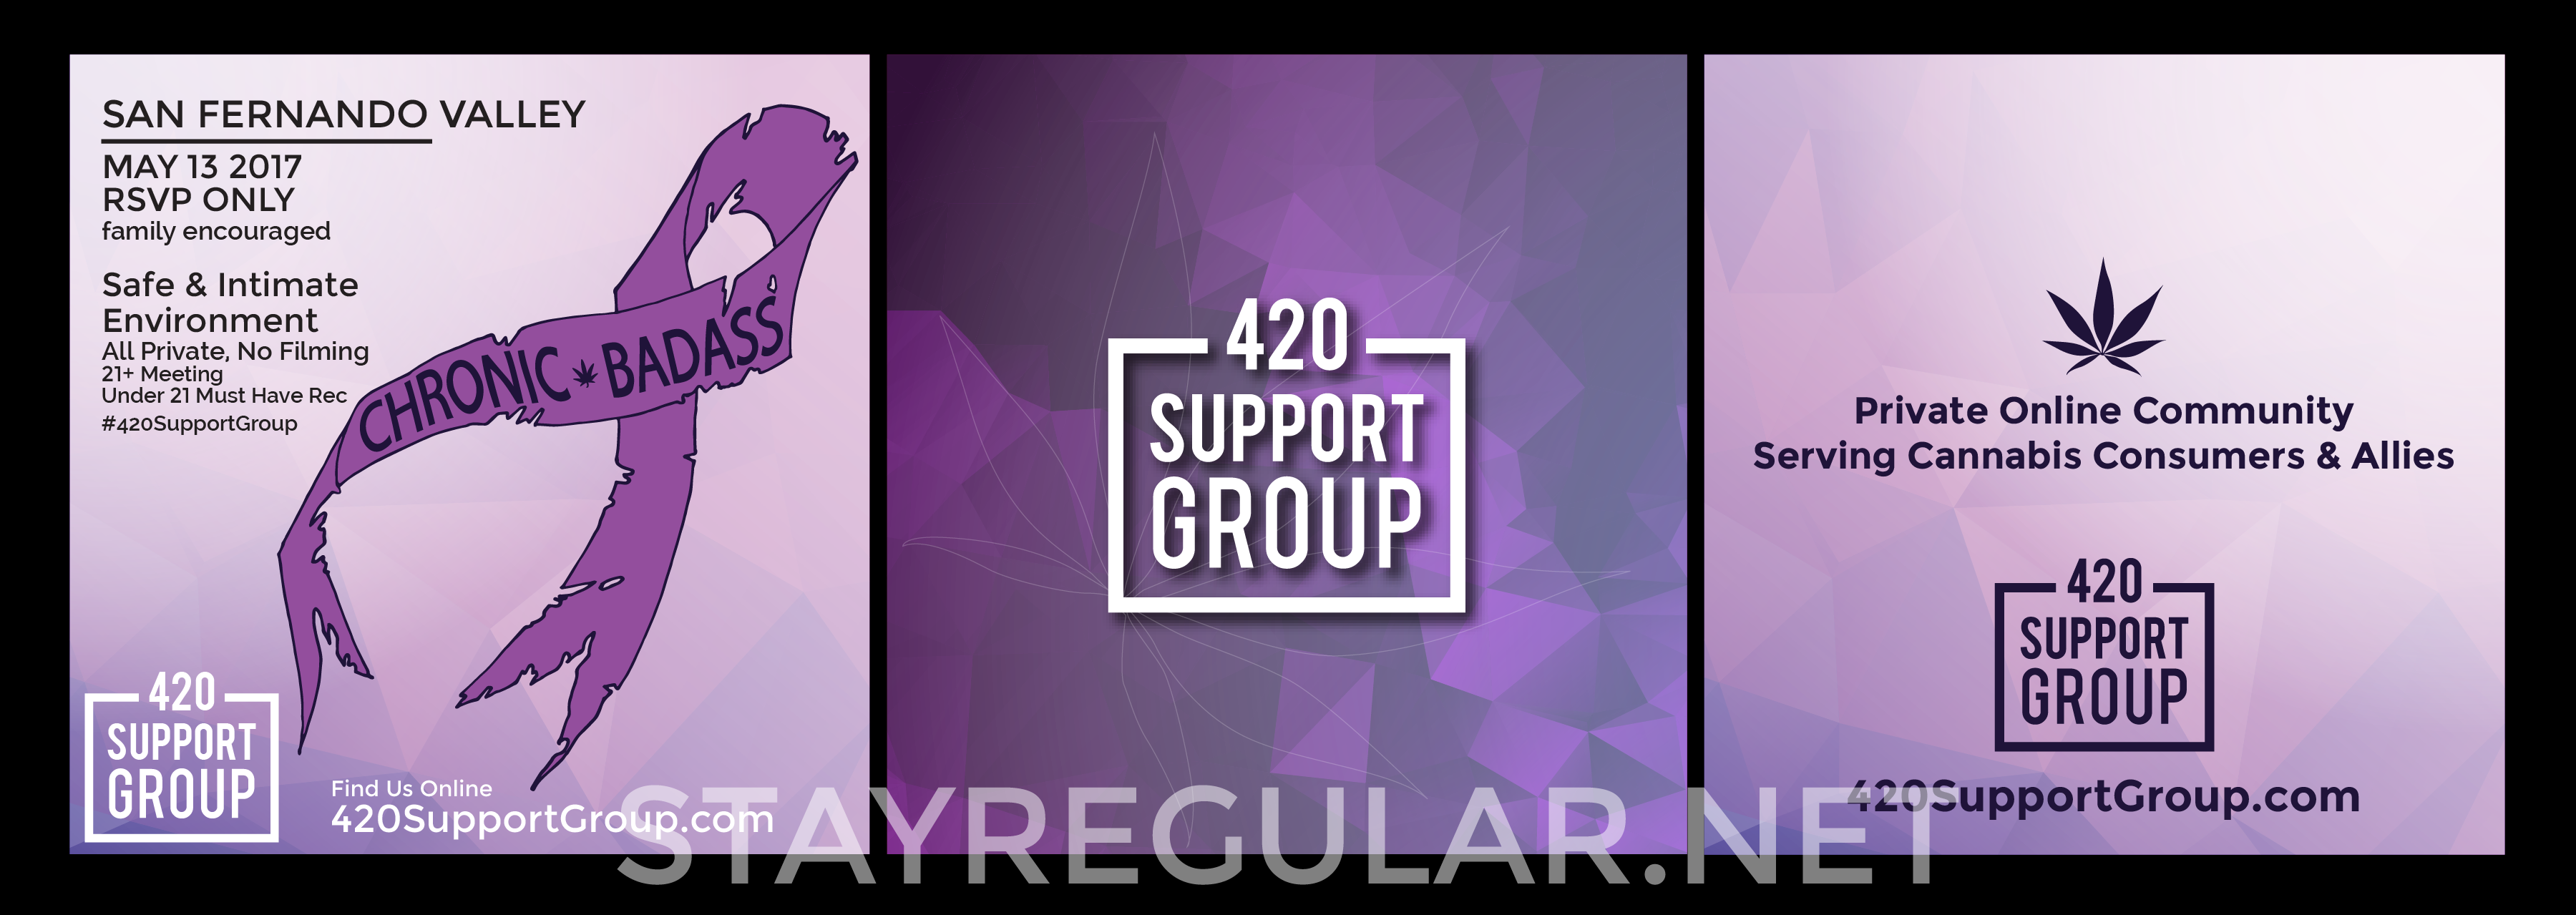 420 Support Group Launch